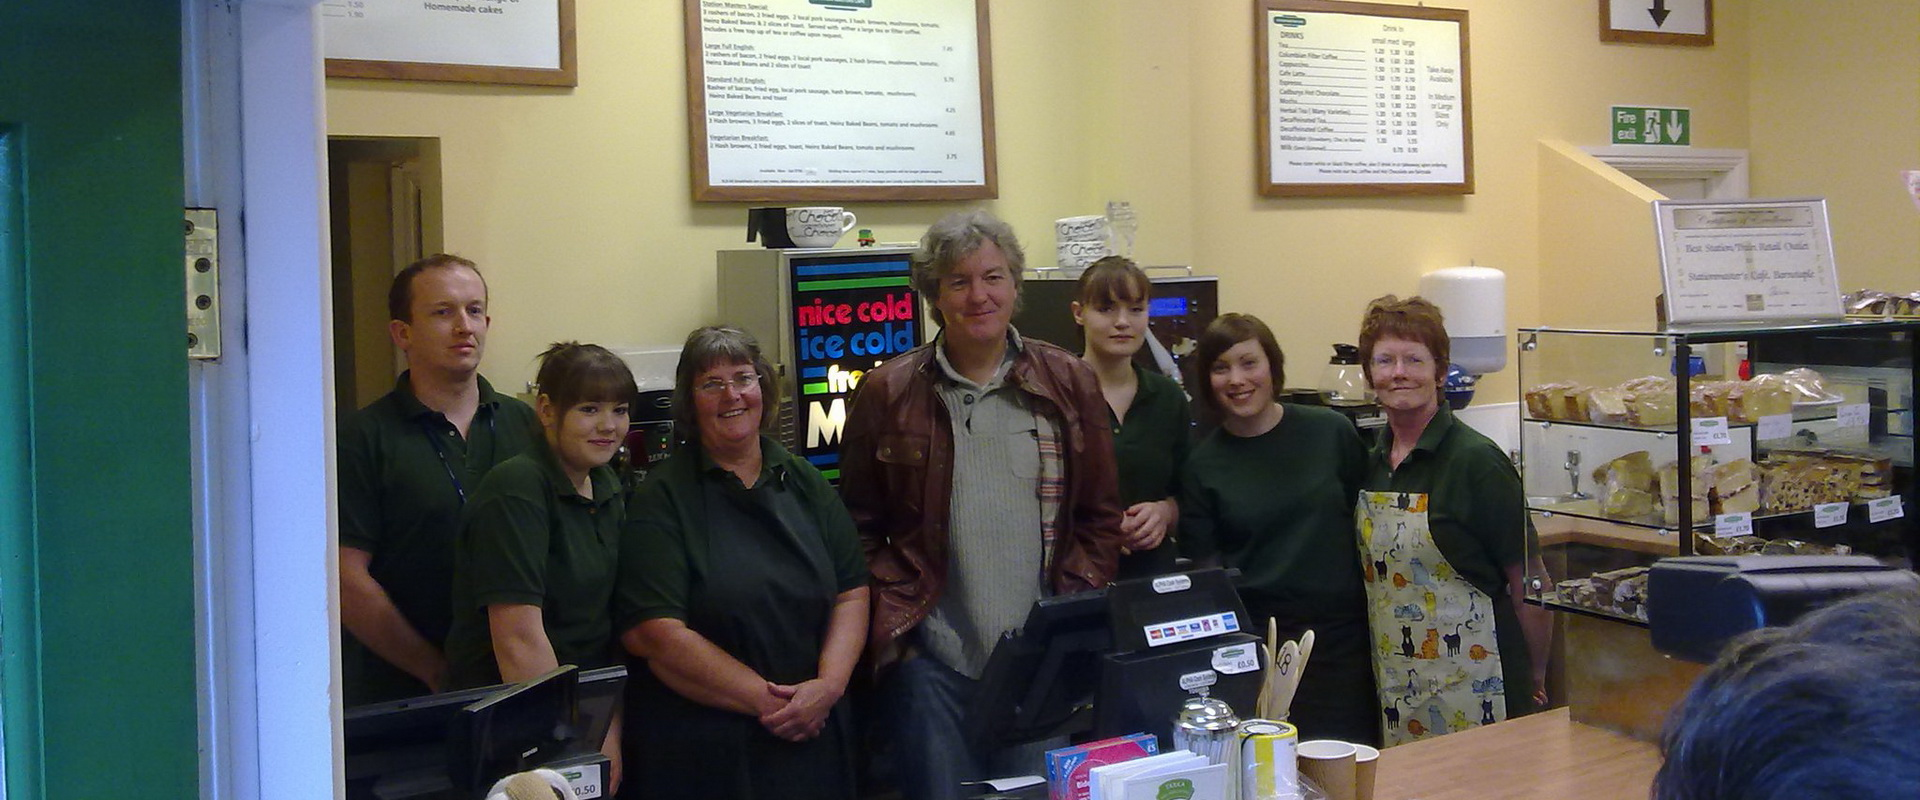 James May's Toy Stories in North Devon